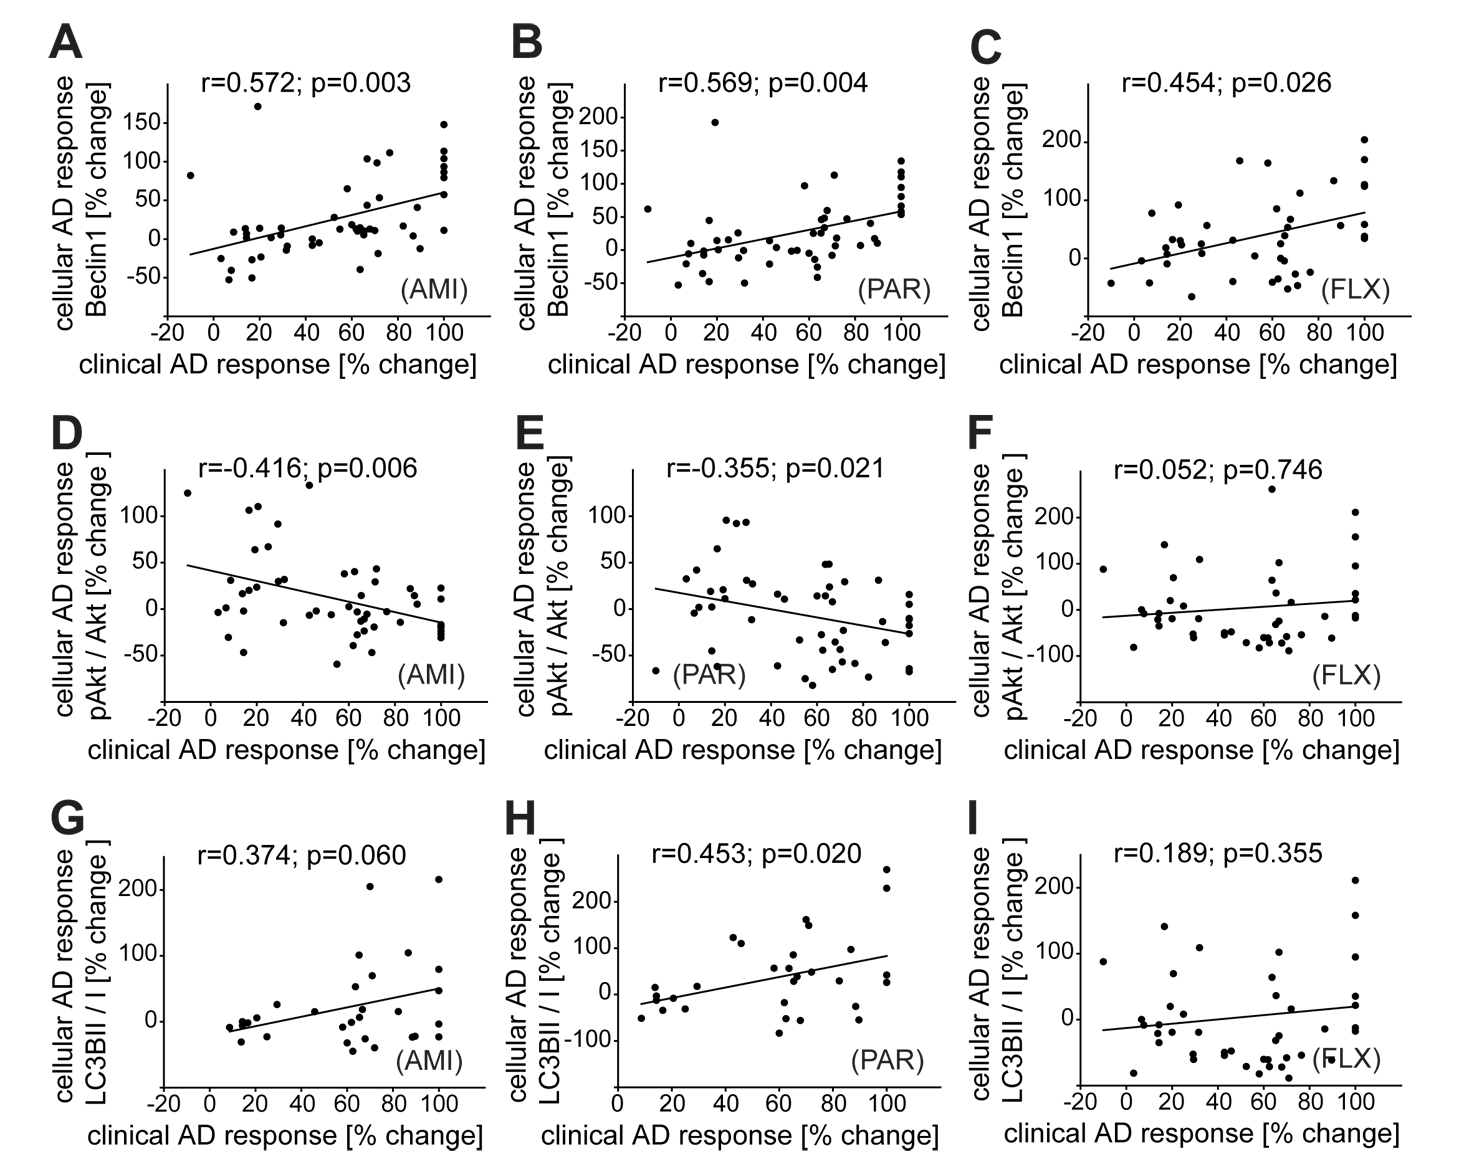 Correlation of clinical antidepressant response with the effects of antidepressants in PBMCs ex vivo.